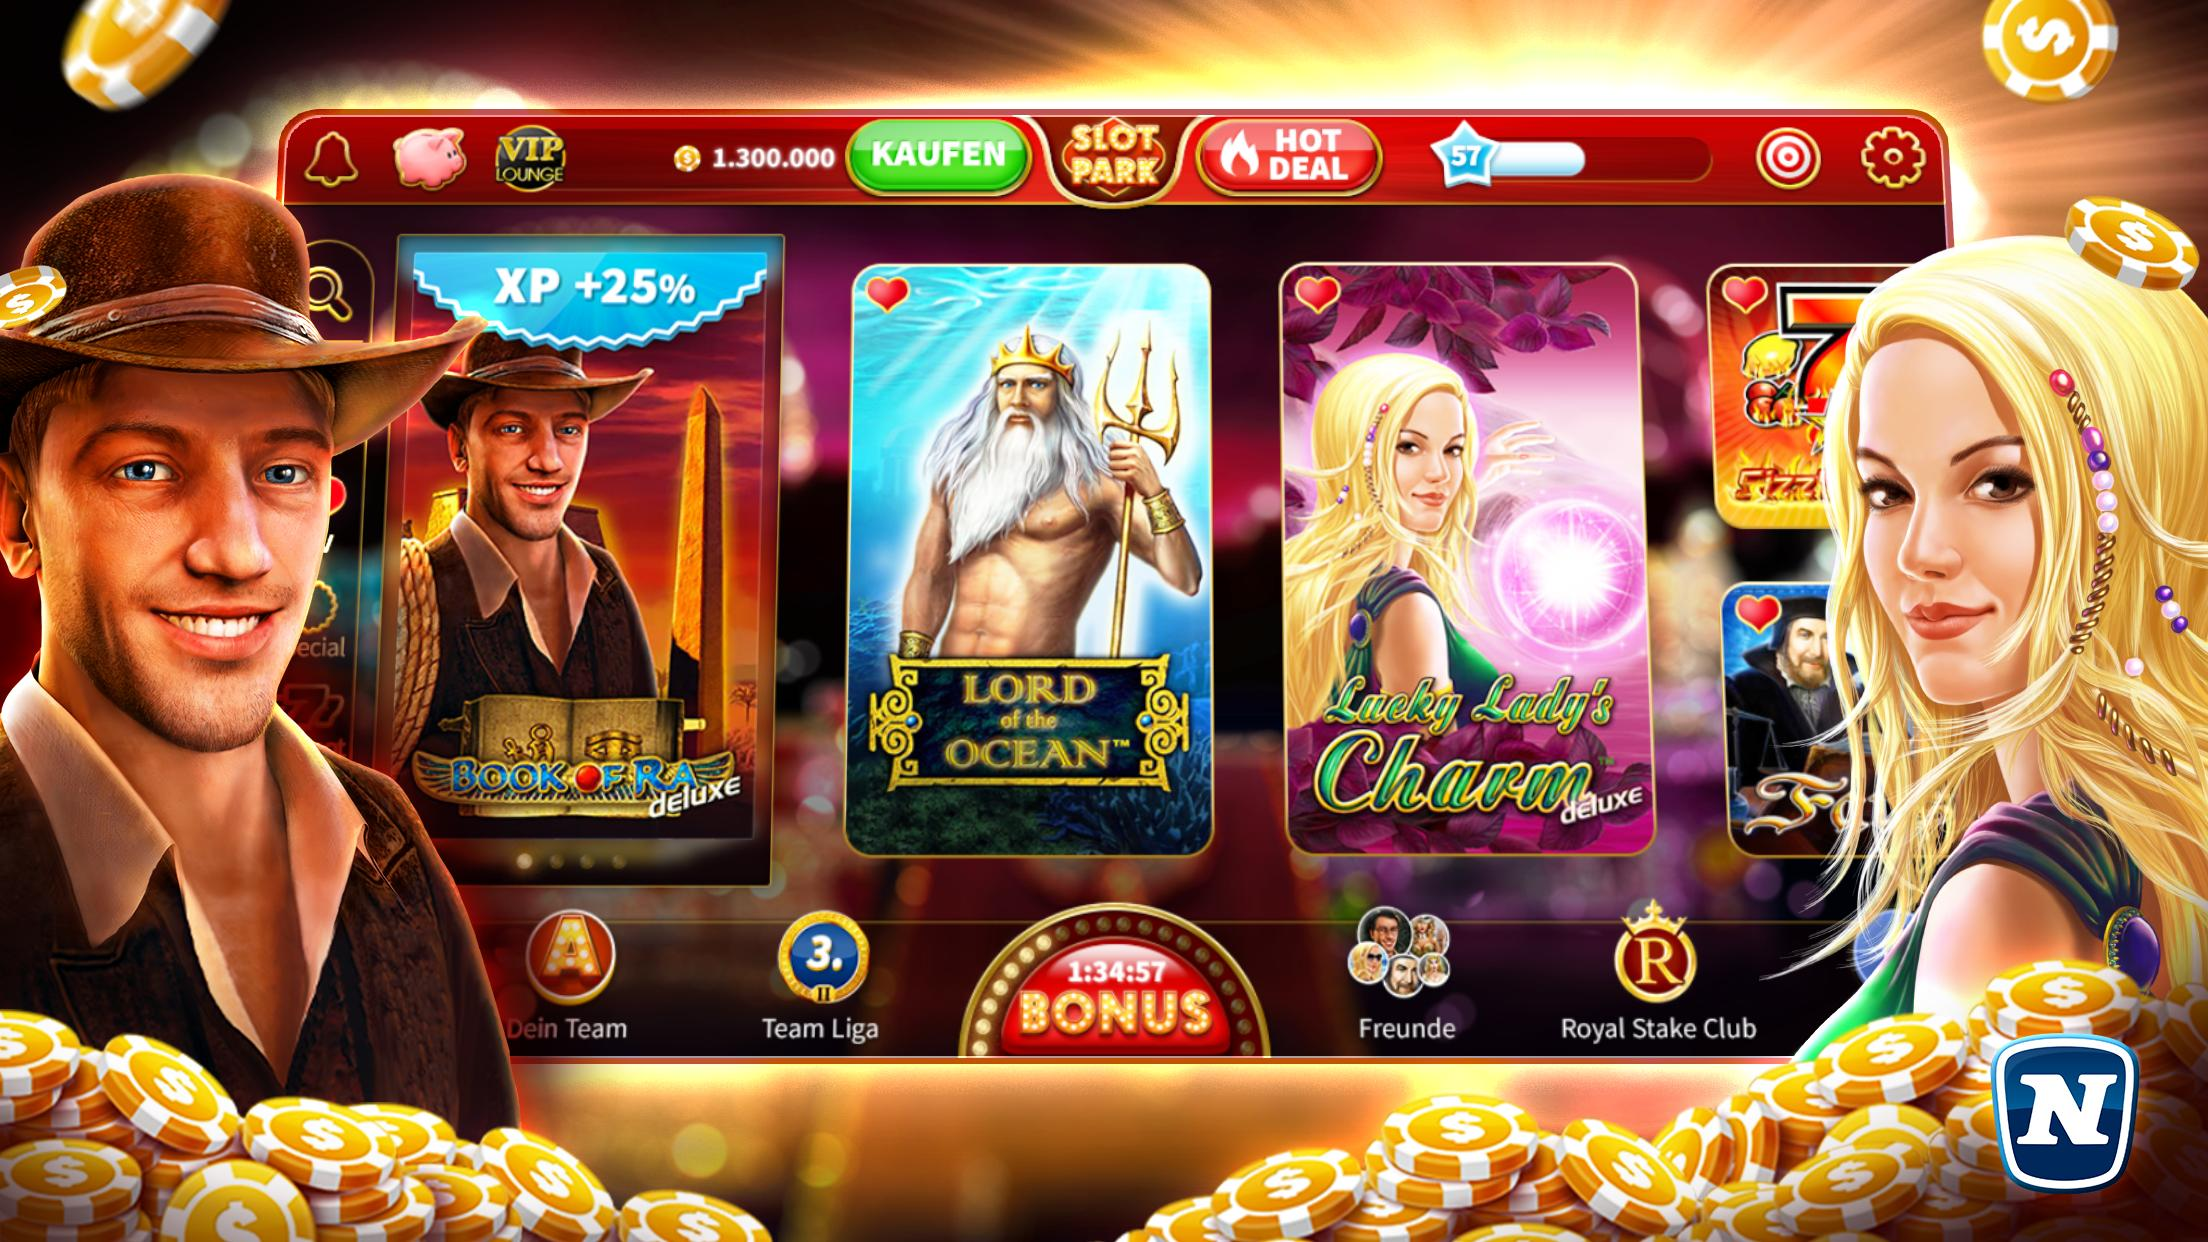 Slotpark Online Casino Games & Free Slot Machine 3.21.1 Screenshot 15